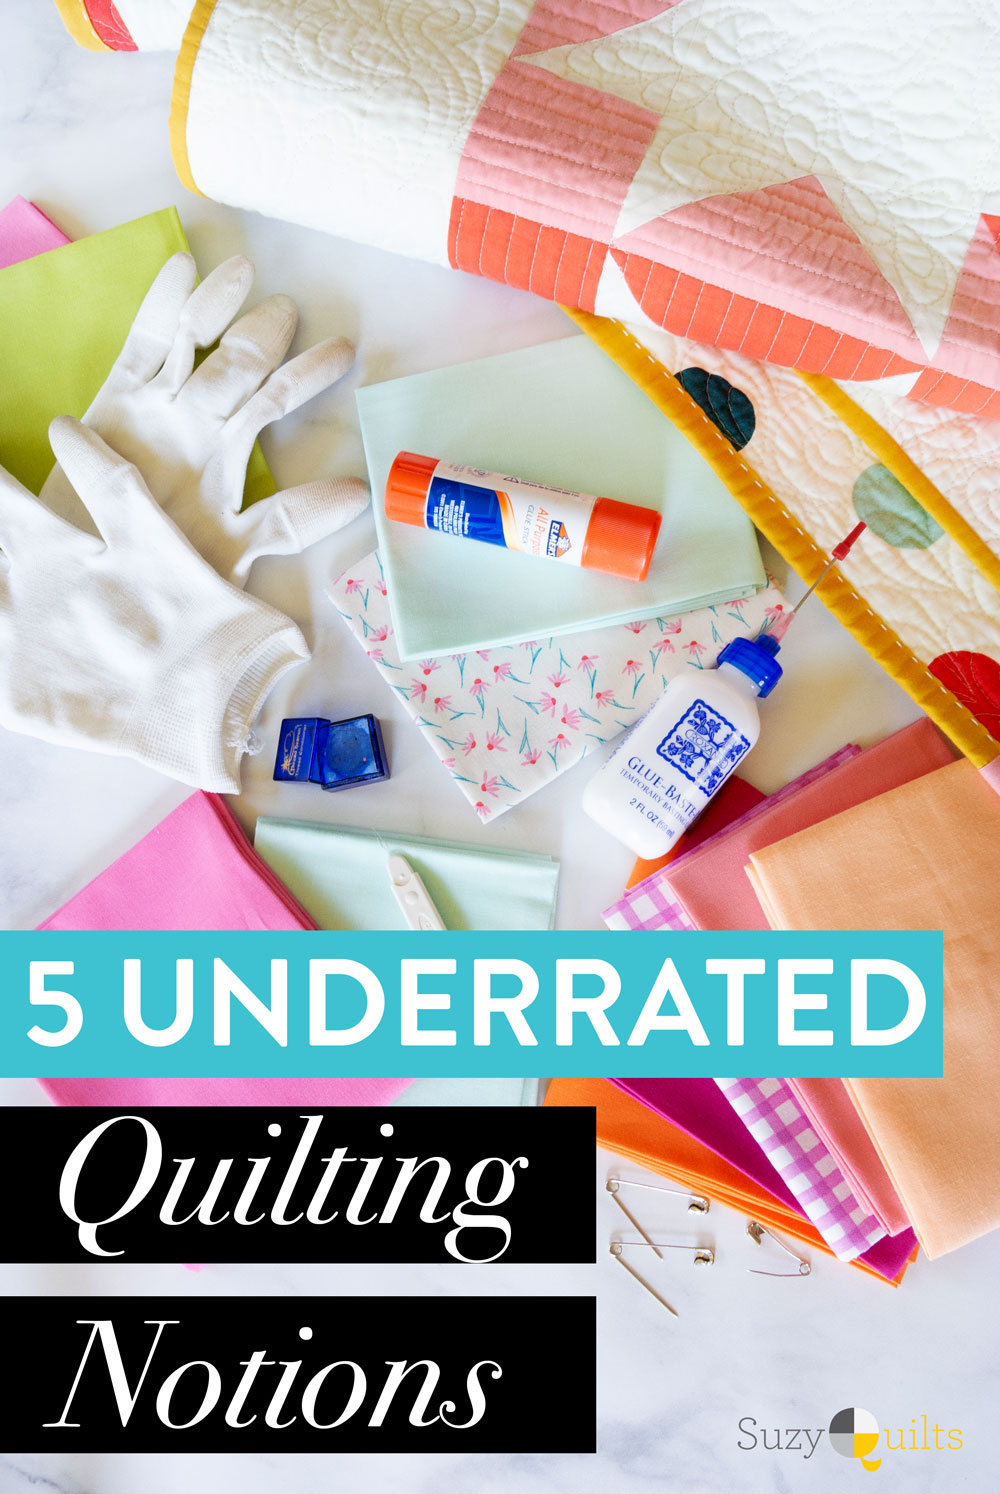 The 5 best underrated quilting notions that should be in every sewing room. These are great for gift giving or adding to your own sewing studio!